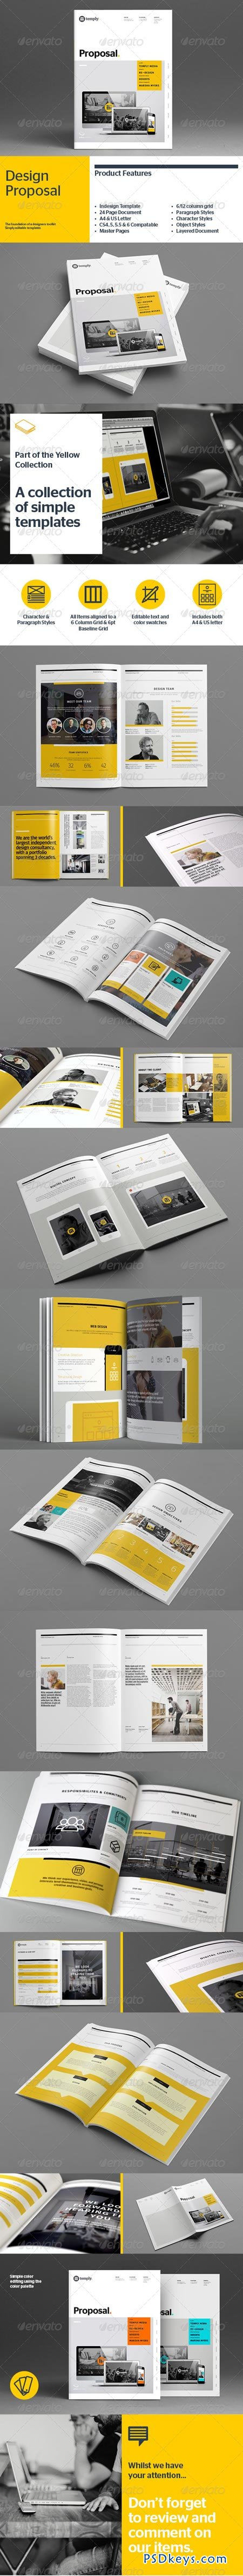 Proposal Template 8536184 Free Download Photoshop Vector Stock